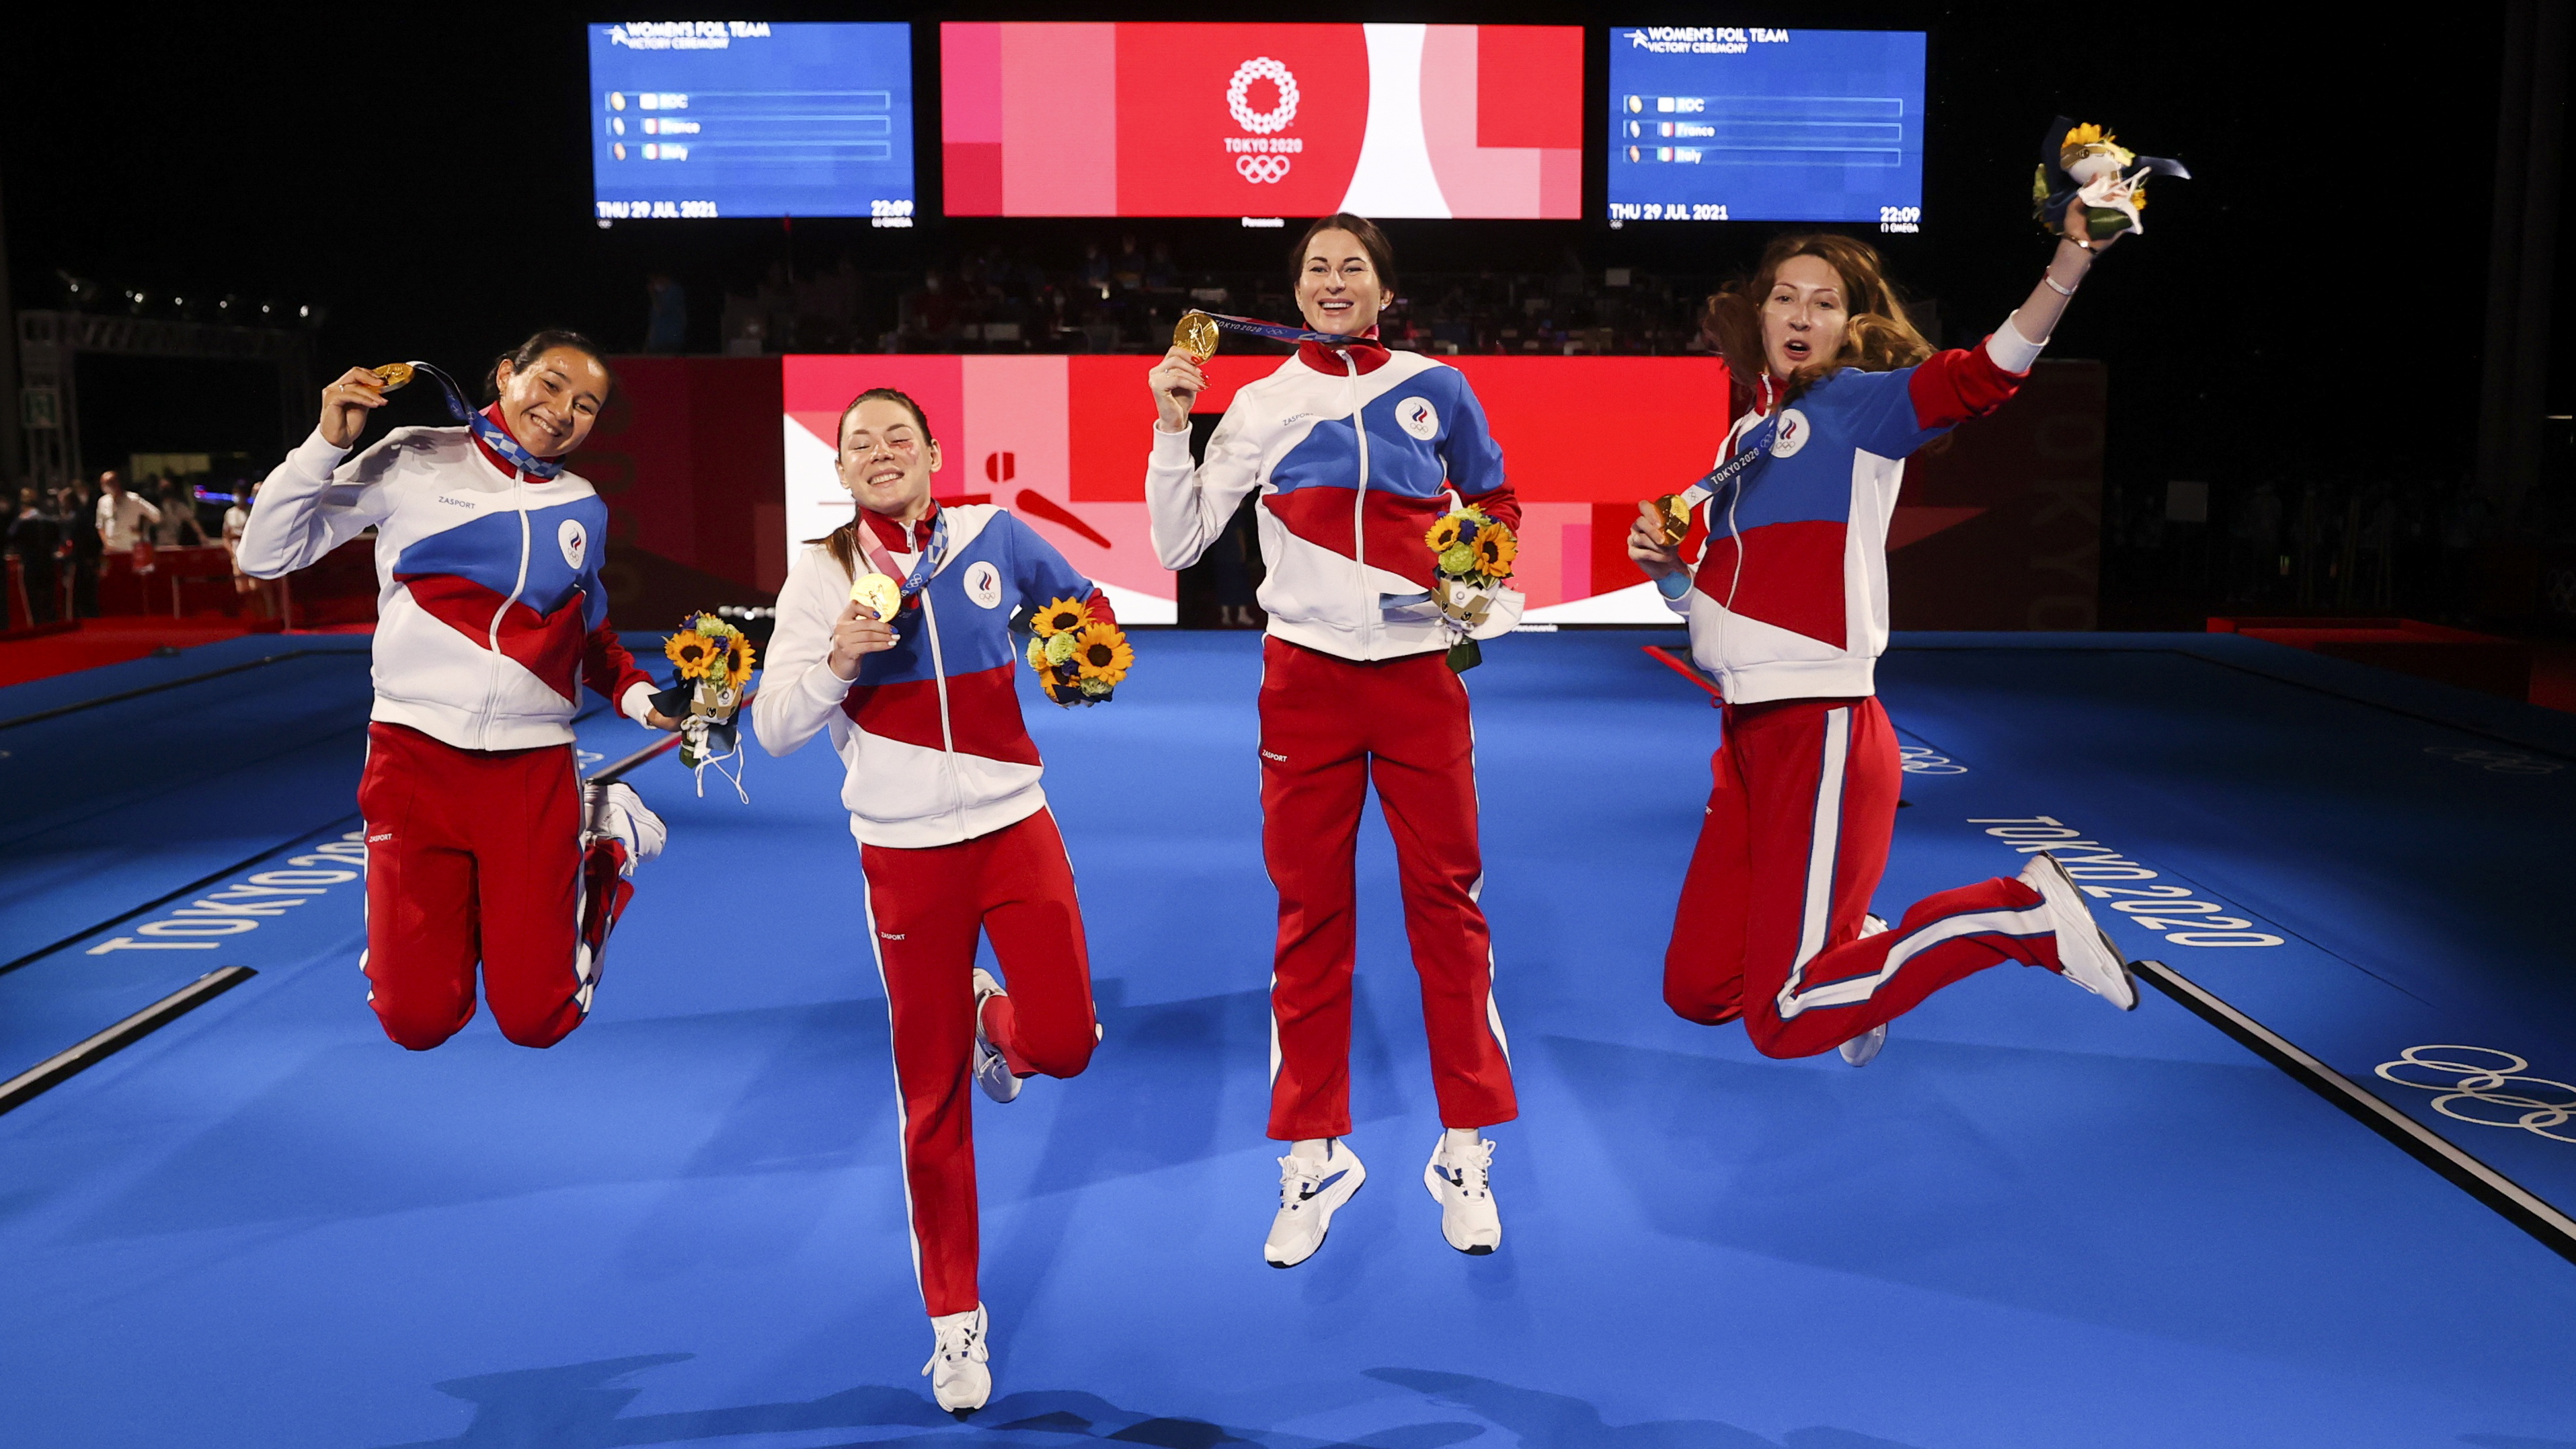 Tokyo 2020 Olympics - Fencing - Women's Team Foil - Medal Ceremony - Makuhari Messe Hall B - Chiba, Japan - July 29, 2021. Gold medallists Inna Deriglazova of the Russian Olympic Committee, Adelina Zagidullina of the Russian Olympic Committee, Larisa Korobeynikova of the Russian Olympic Committee and Marta Martyanova of the Russian Olympic Committee celebrate their victory REUTERS/Carl Recine